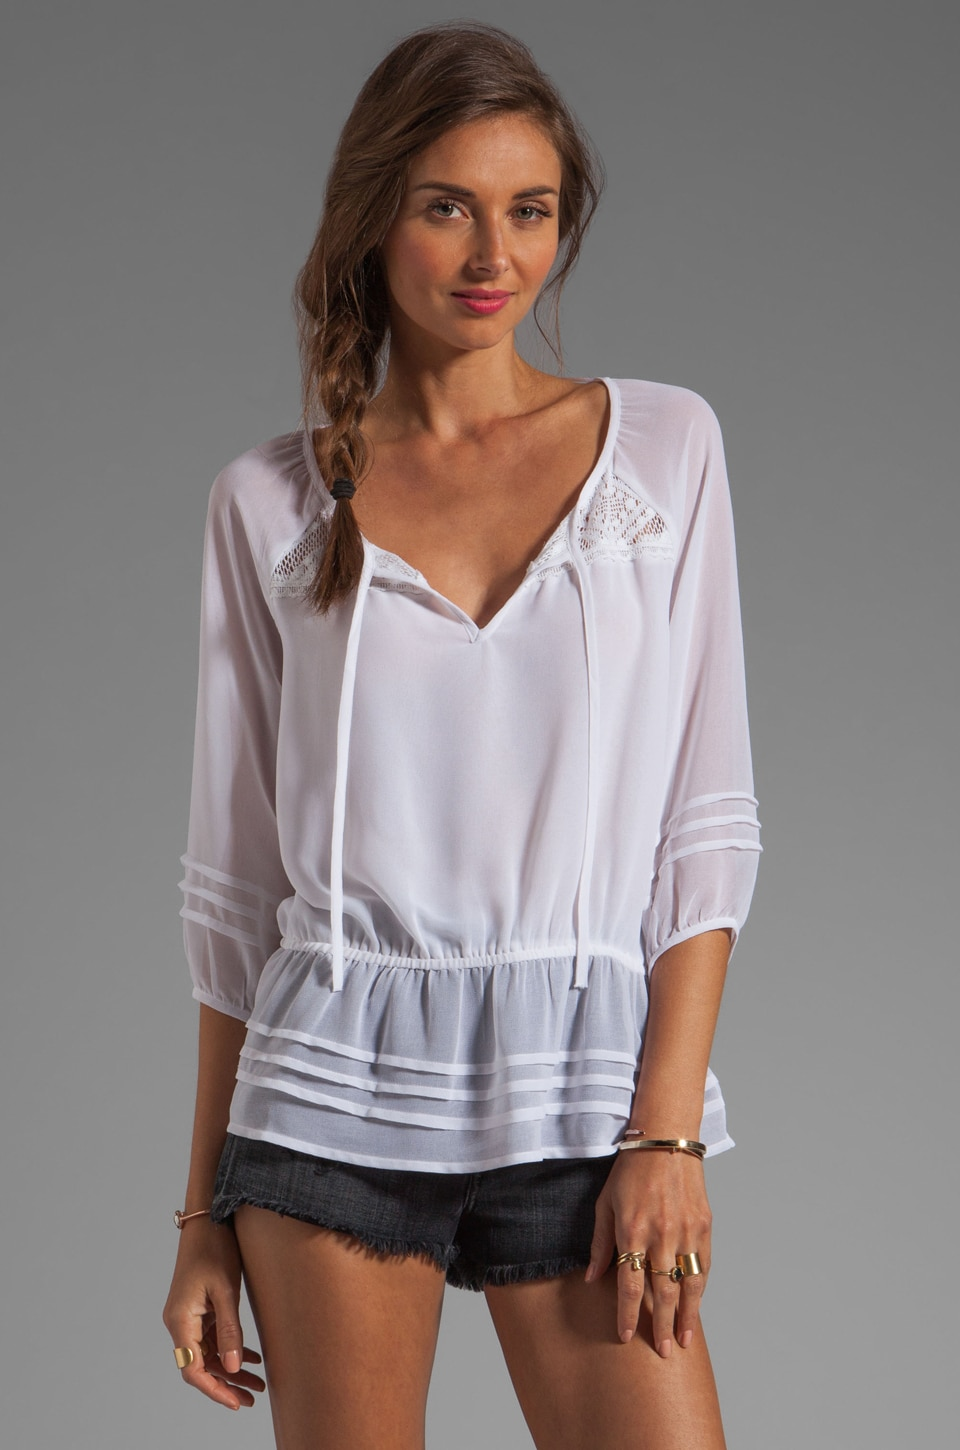 Sanctuary Peplum Blouse in White